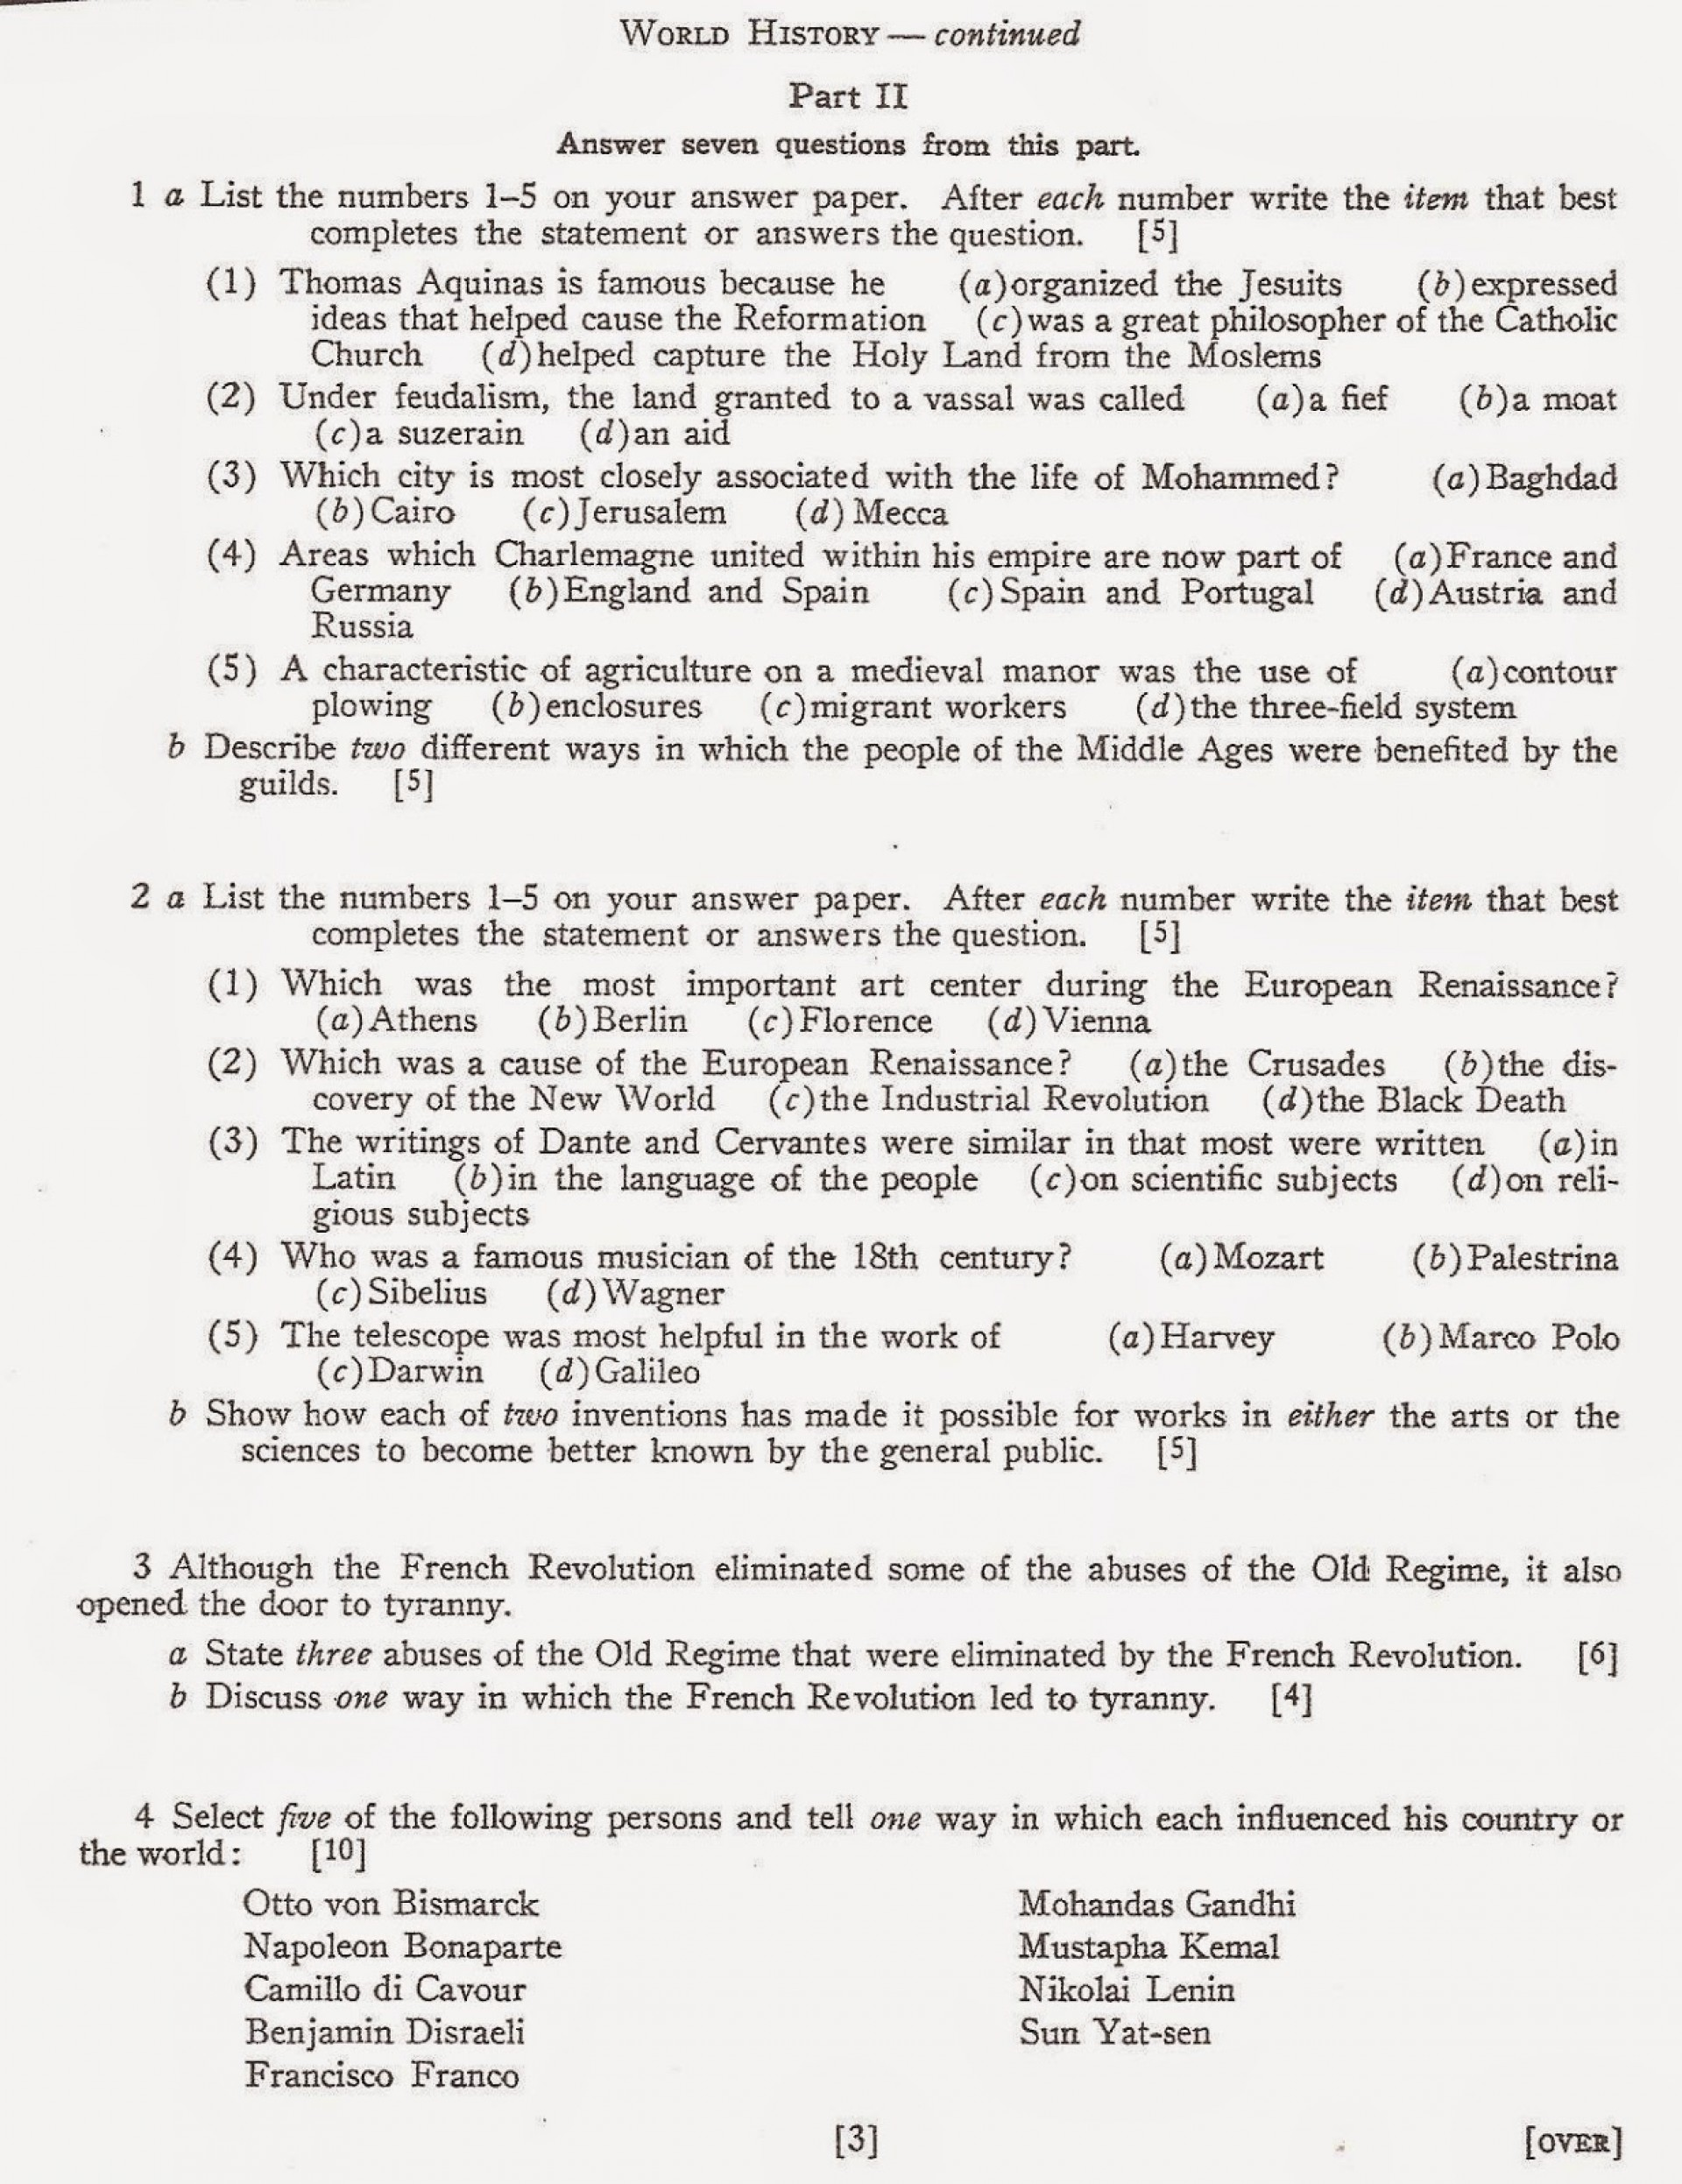 008 Essay On Music Example Marvelous Musical Instruments Importance Of Culture And 1920